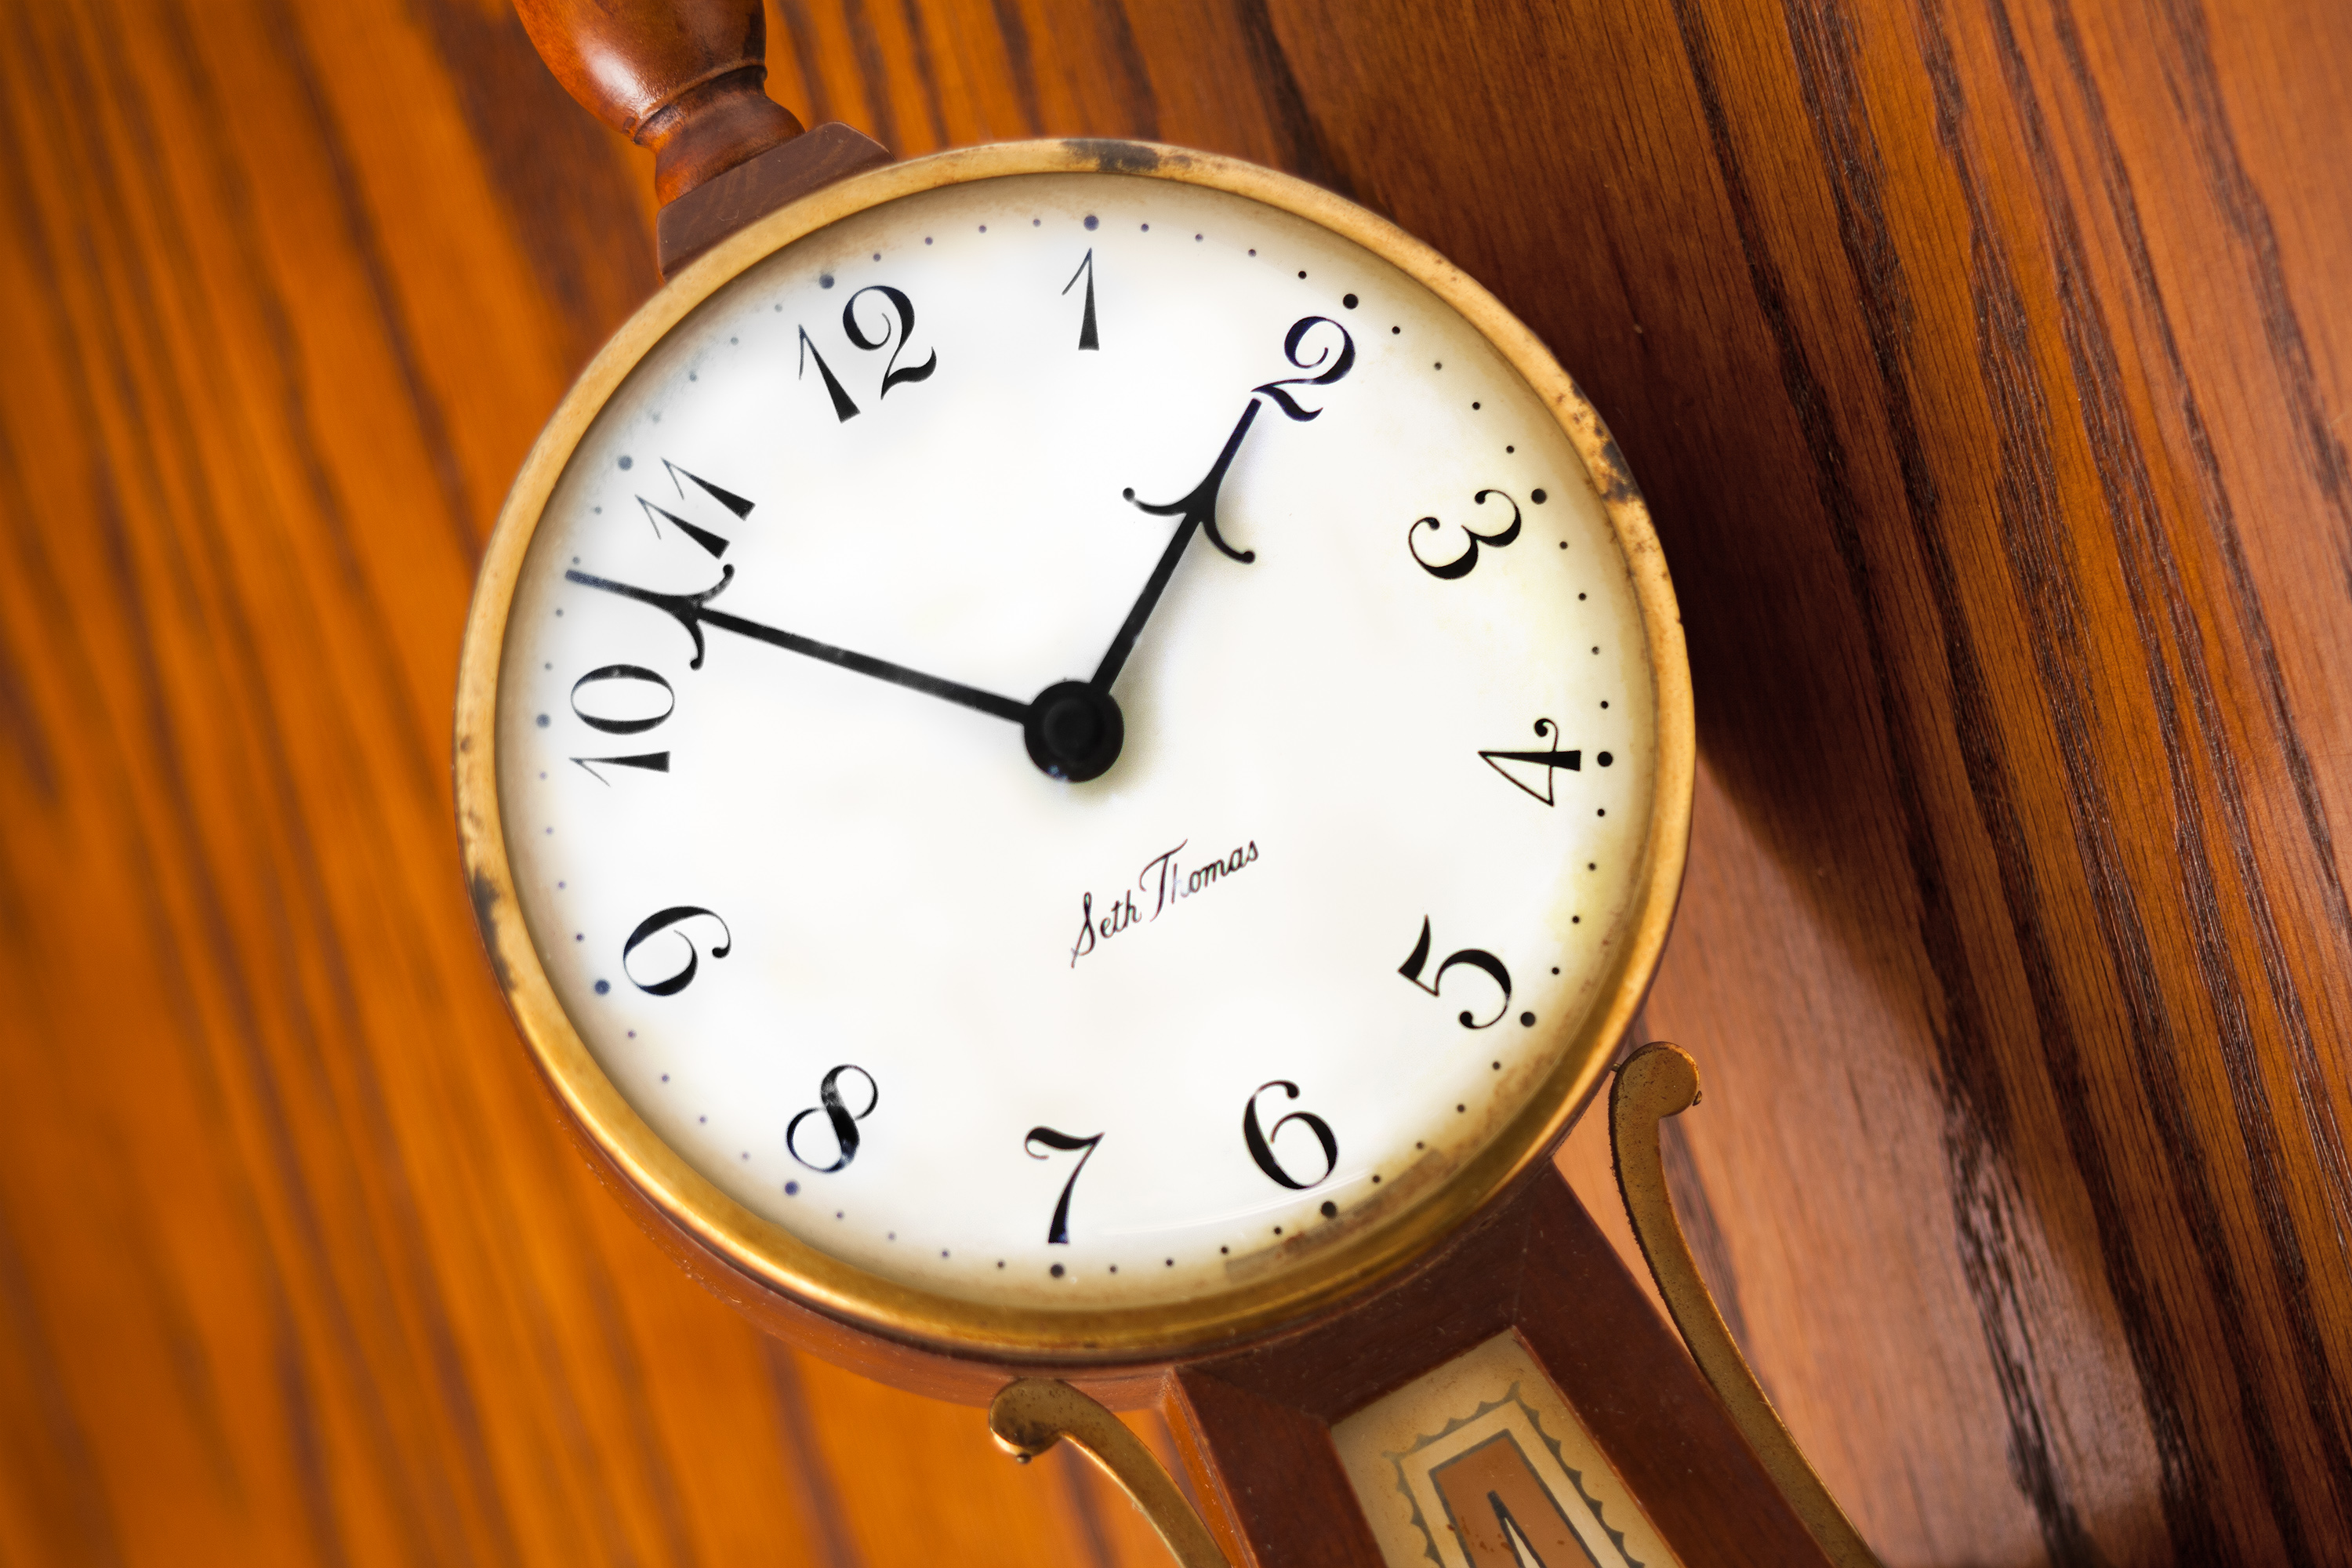 How to Find the Manufacturer of a Grandfather Clock | Our